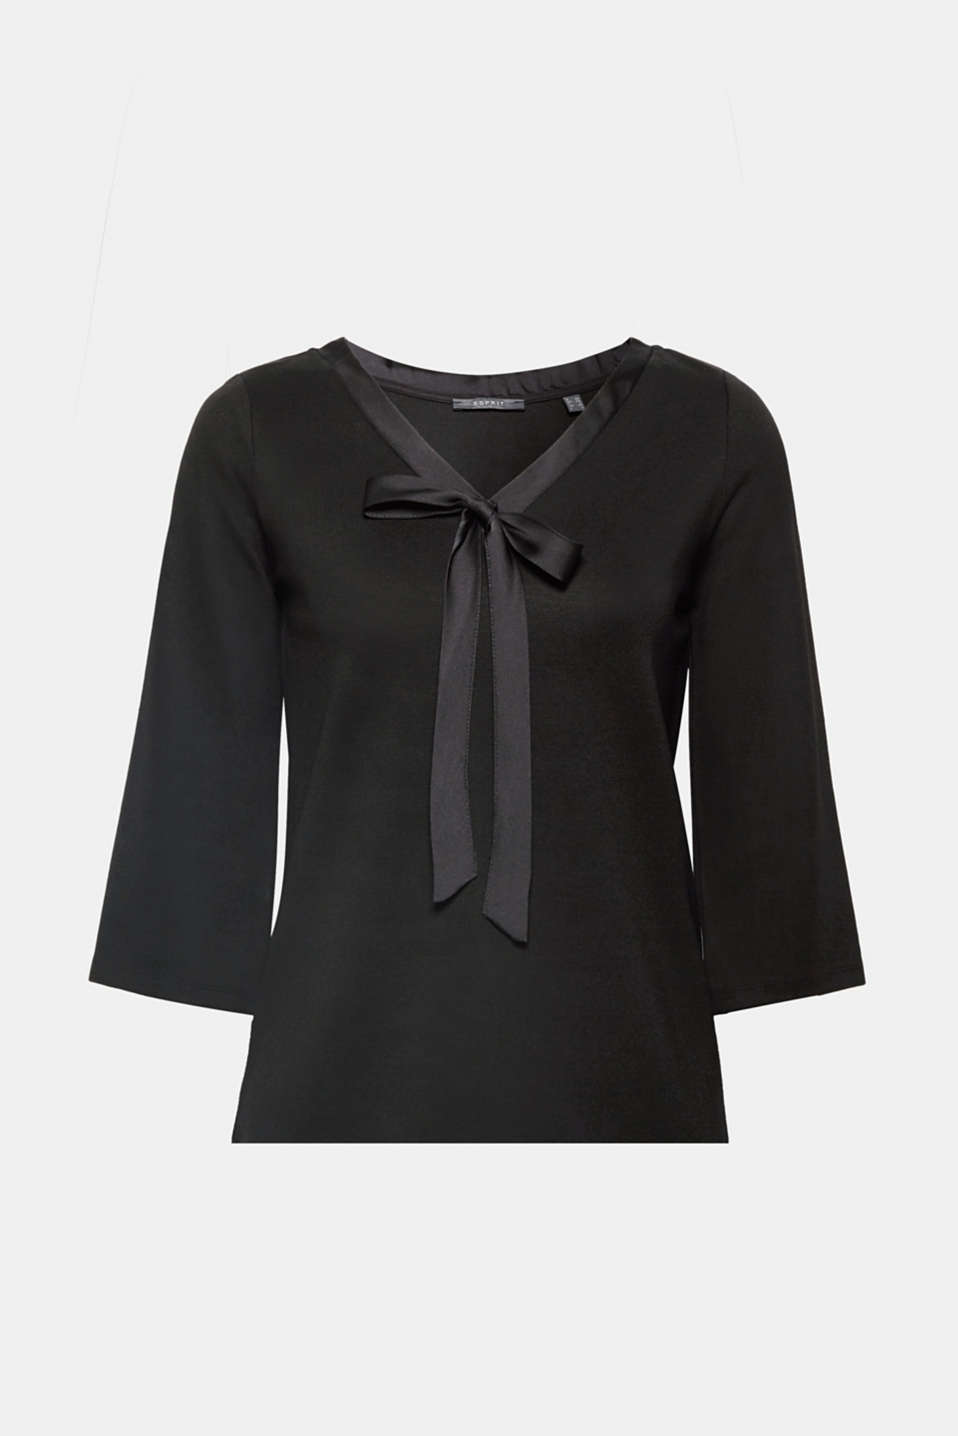 Elegant look, ultimate comfort: this stretch T-shirt made of compact jersey gives you both plus the decorative neckline bow looks mega feminine, too!